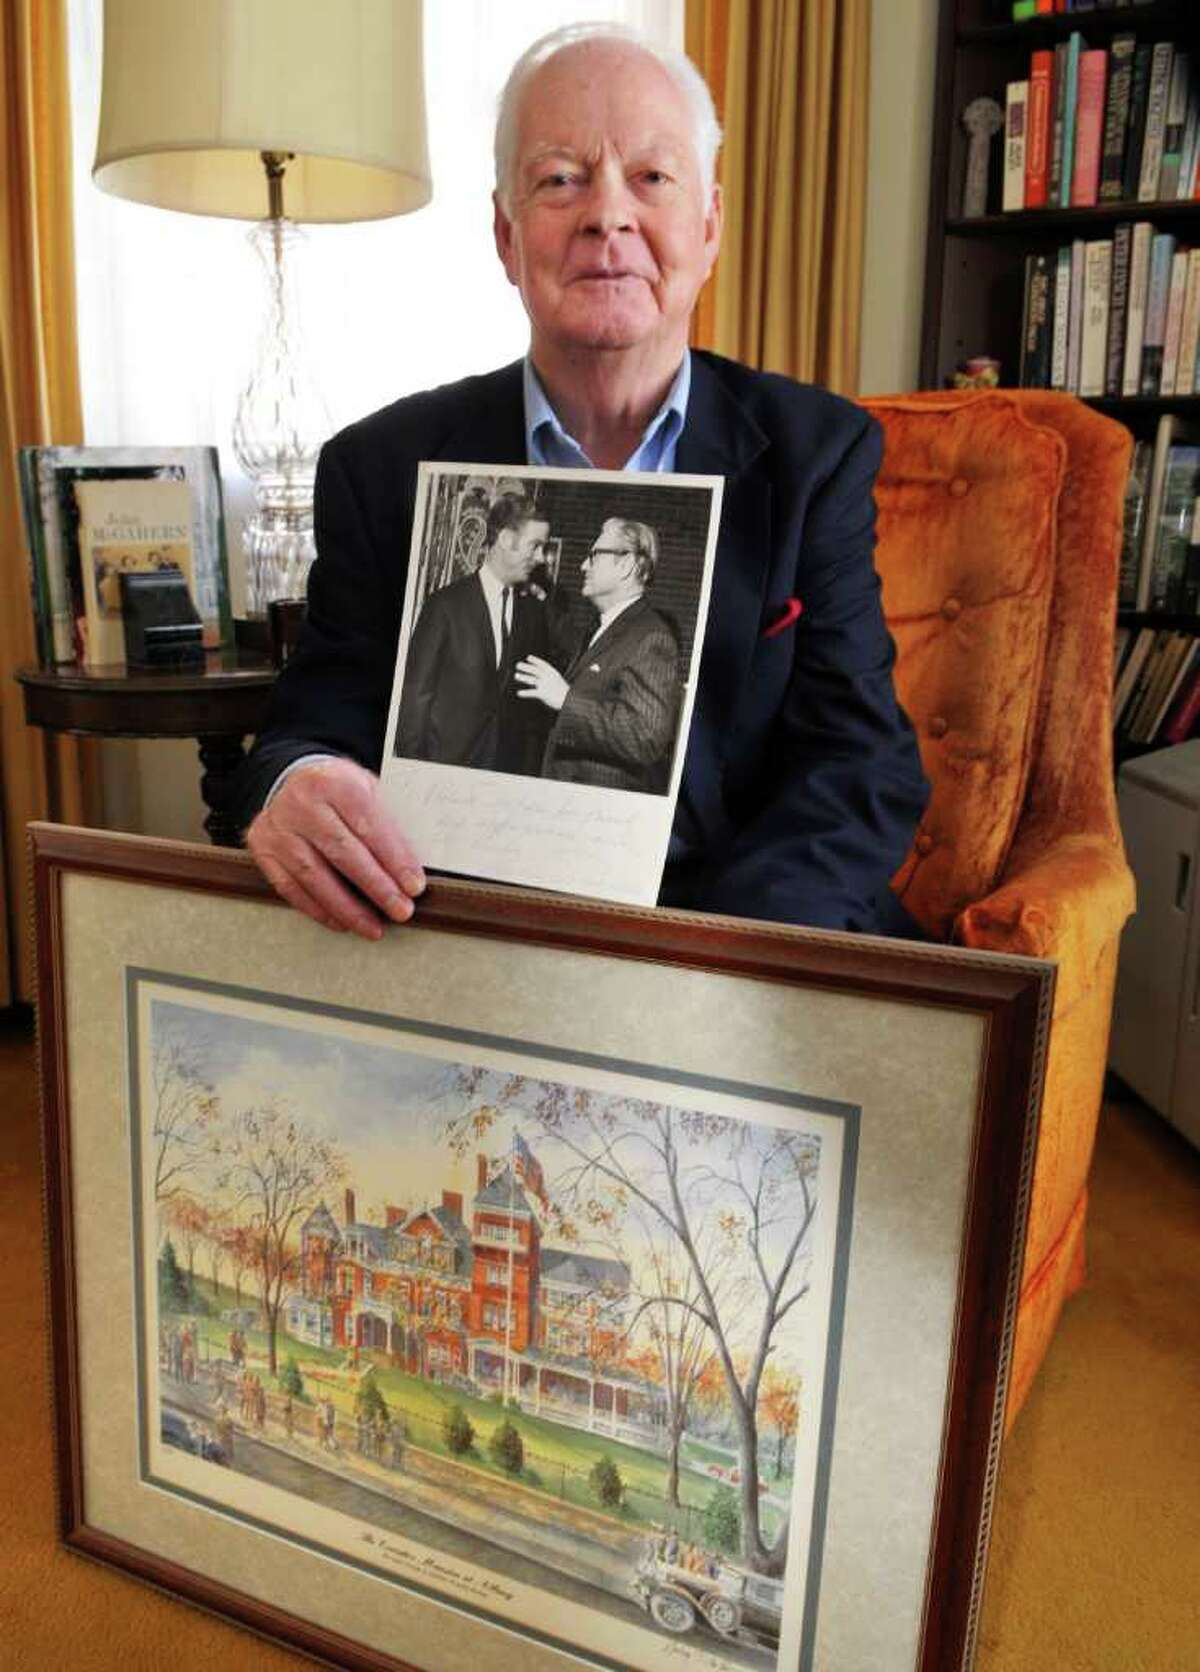 Robert Bennett with mementos of his tenure as superintendent of the NYS Executive Mansion, an autographed photo of Bennett with Gov. Nelson Rockefeller and an early 19th century view of the mansion at his Albany home Wednesday afternoon Mar. 2, 2011. (John Carl D'Annibale / Times Union)